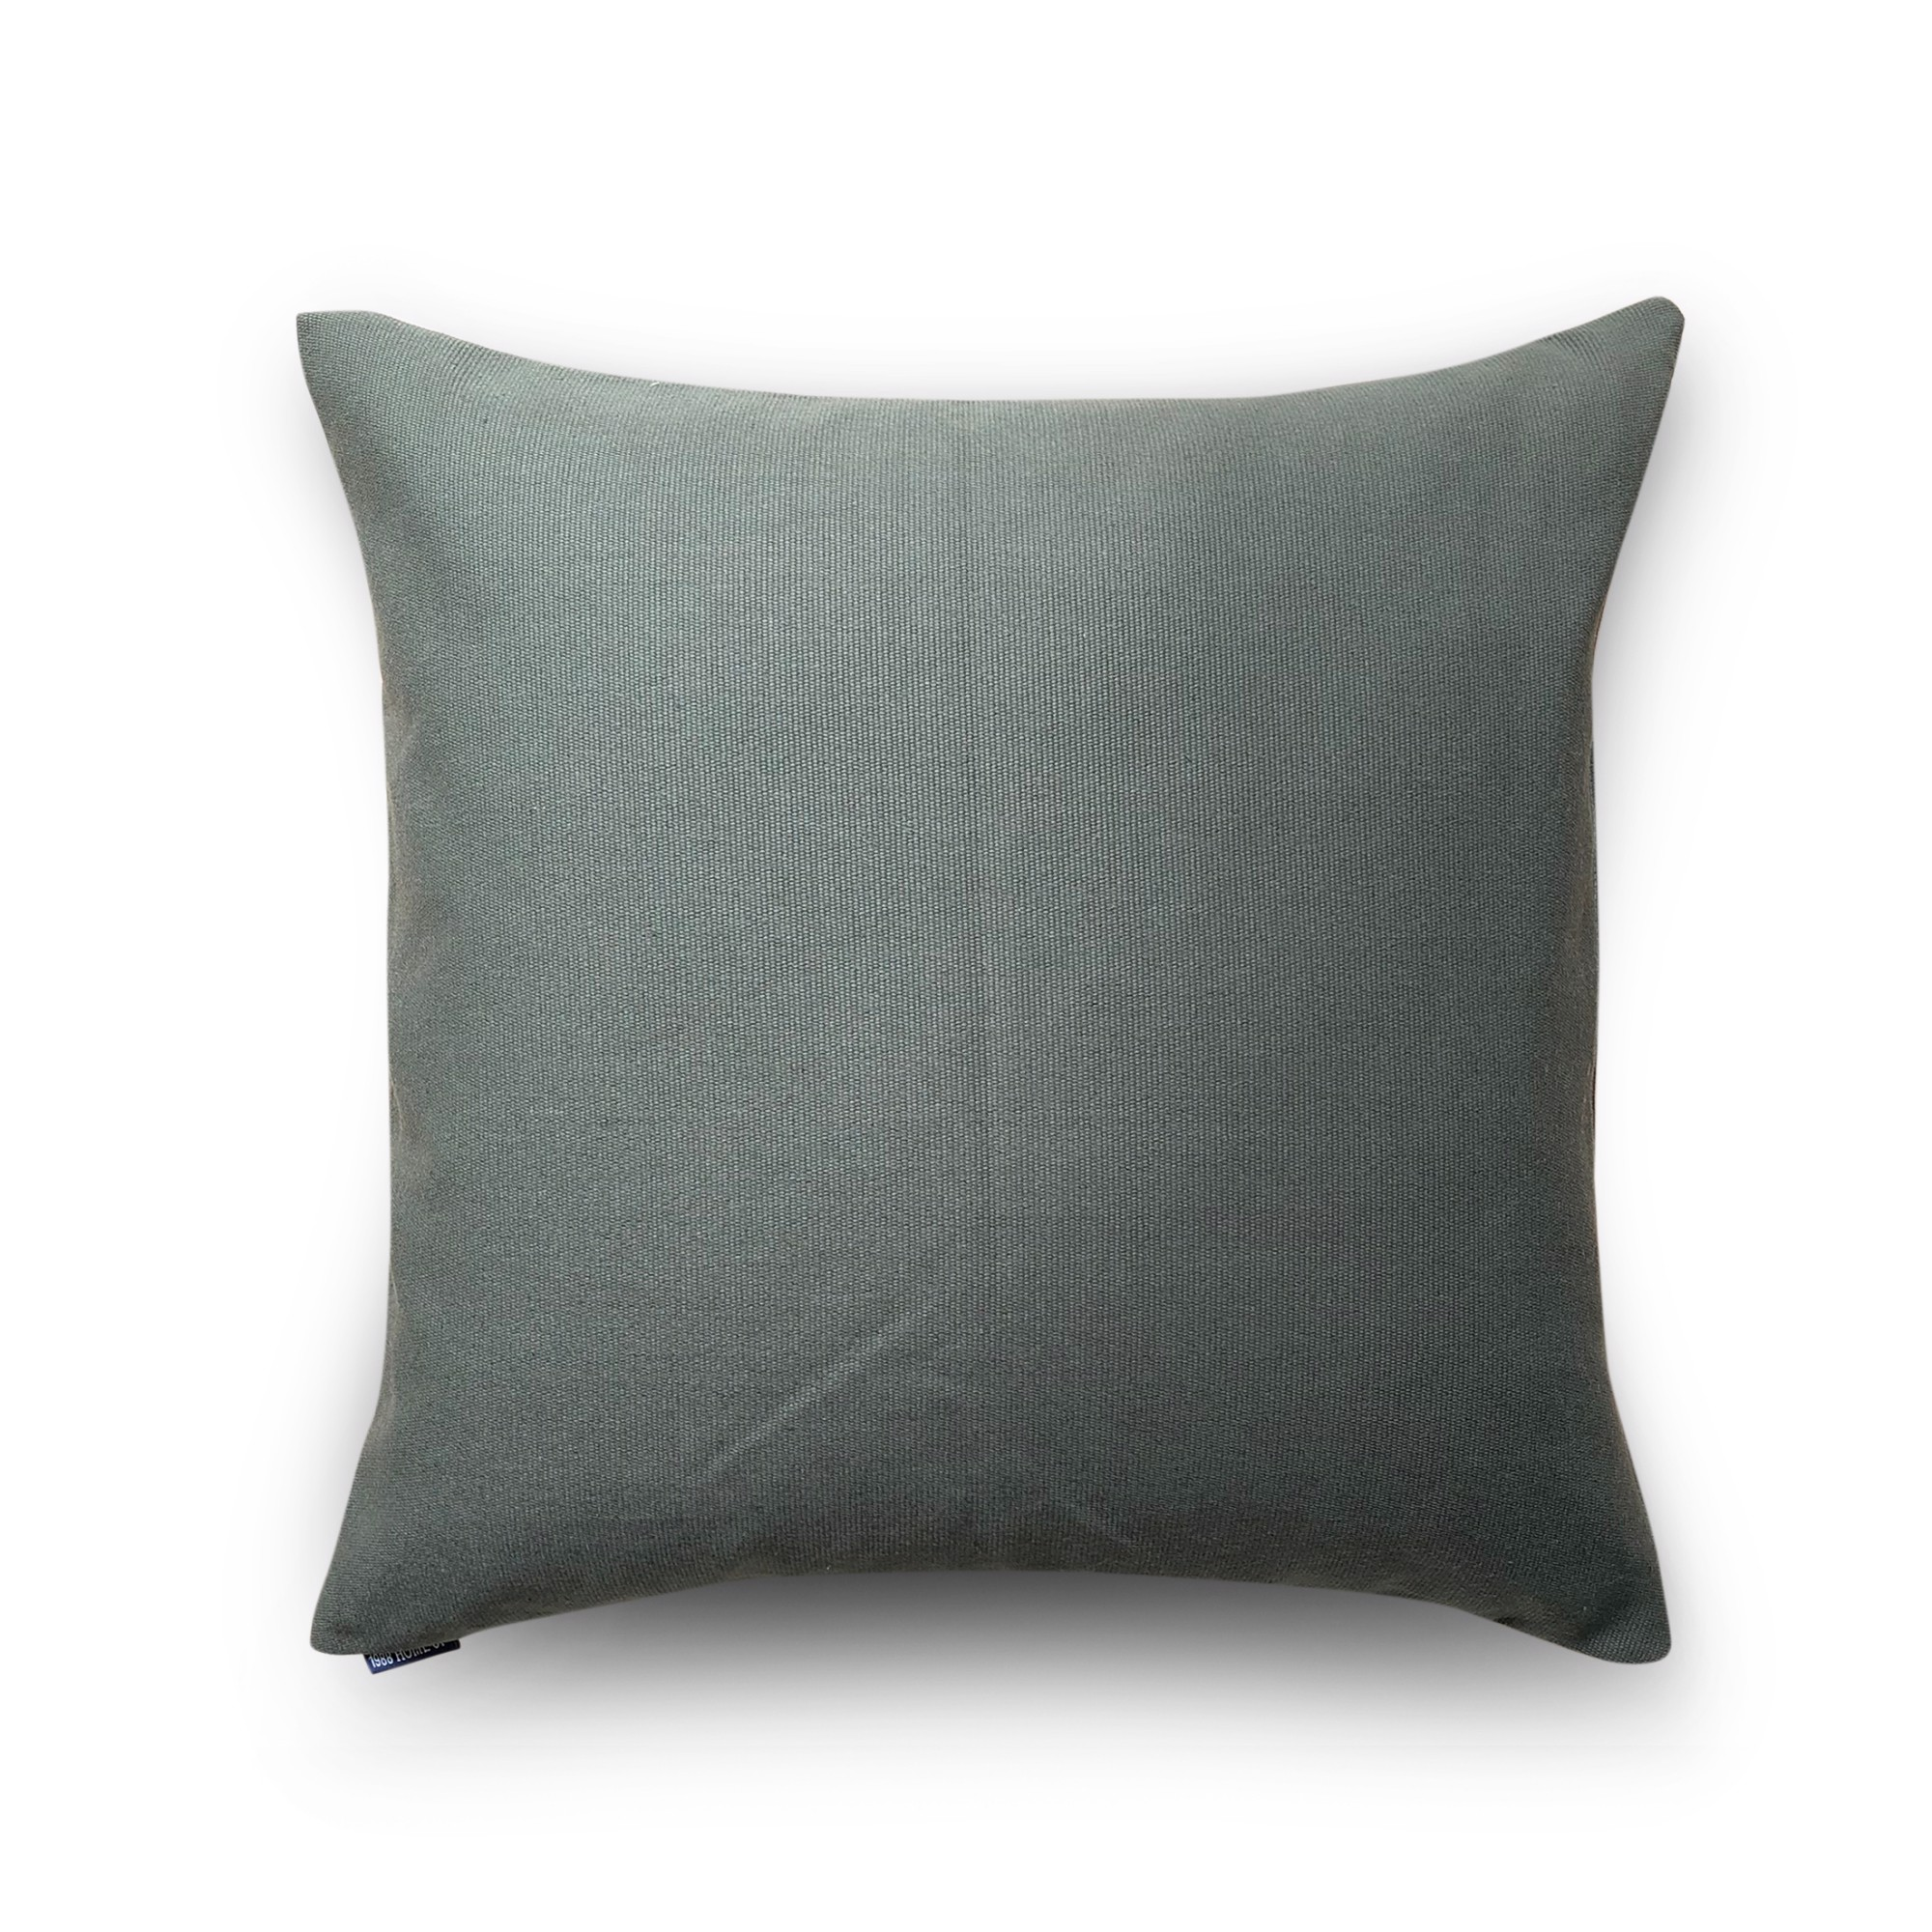 Cushion cover 05 Mossy green